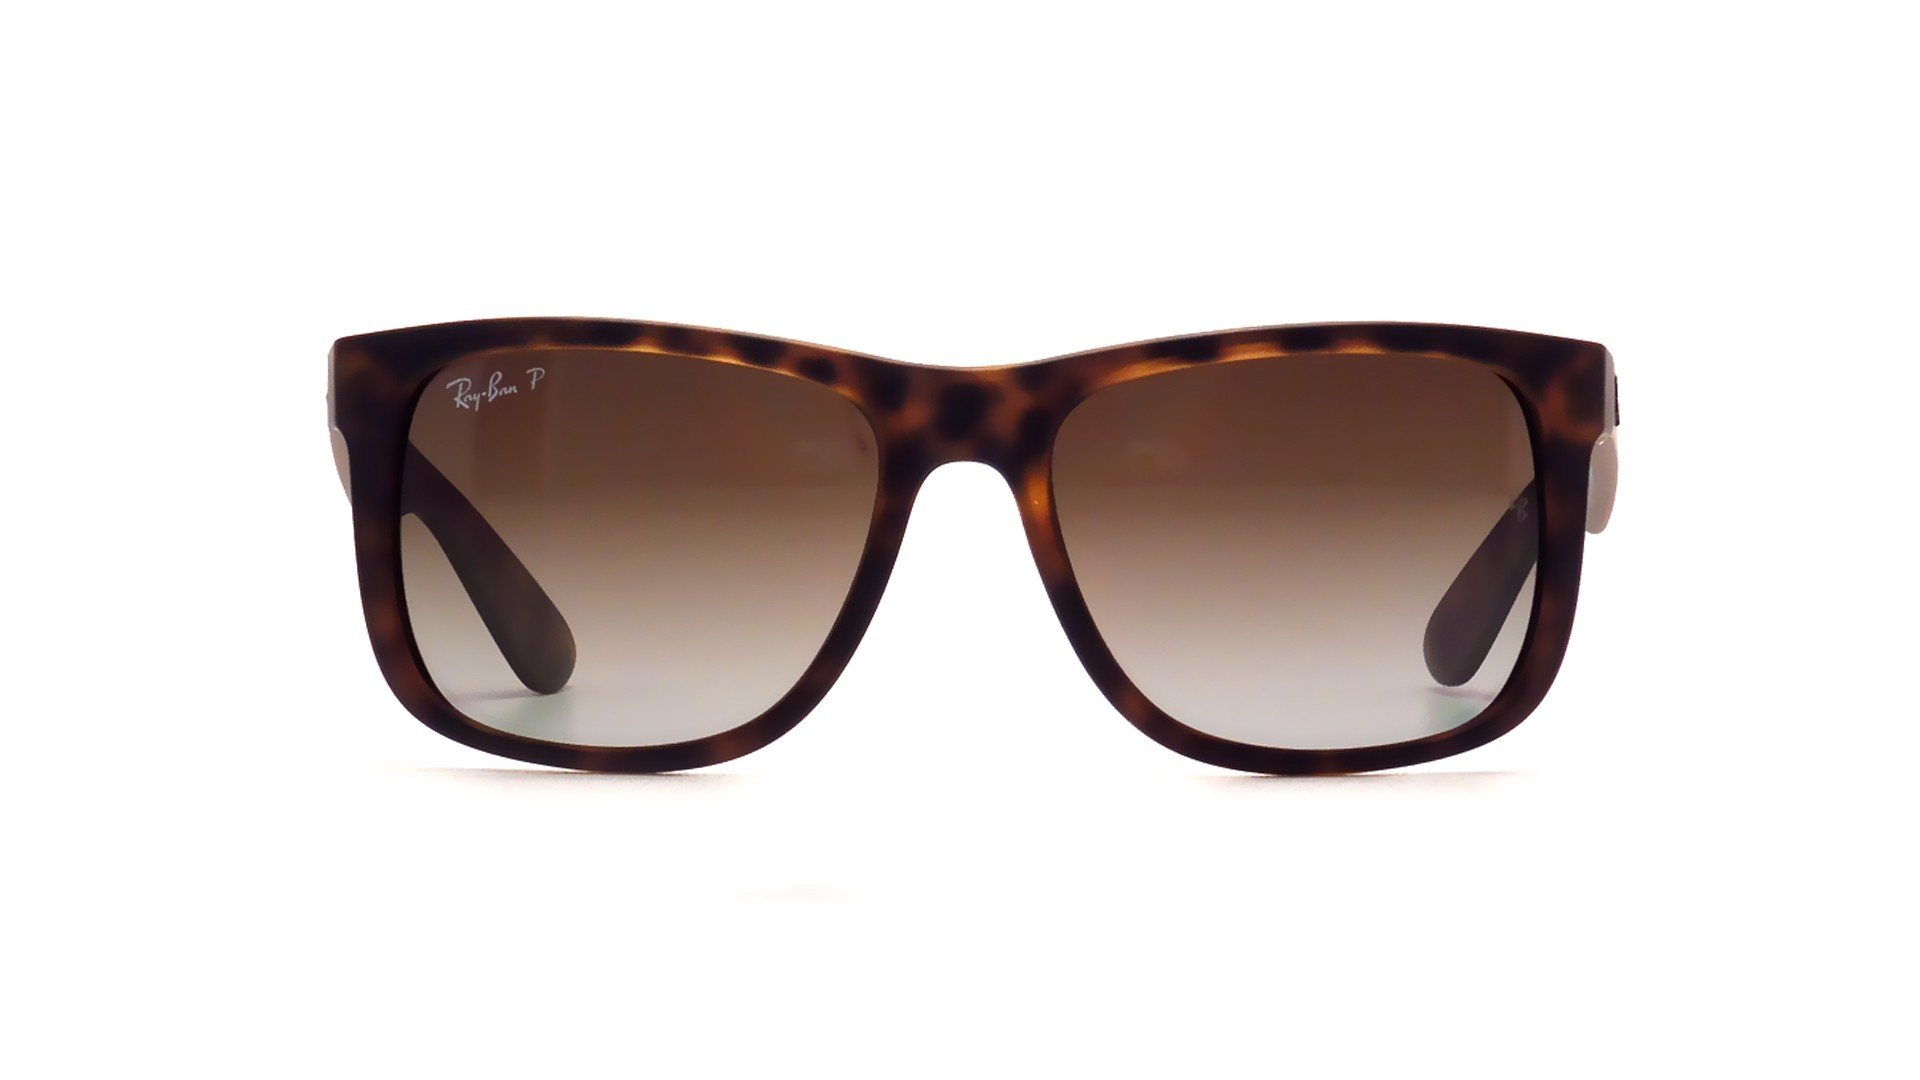 17239e24101 Sunglasses Ray-Ban Justin Brown RB4165 865 T5 54-16 Medium Polarized  Gradient